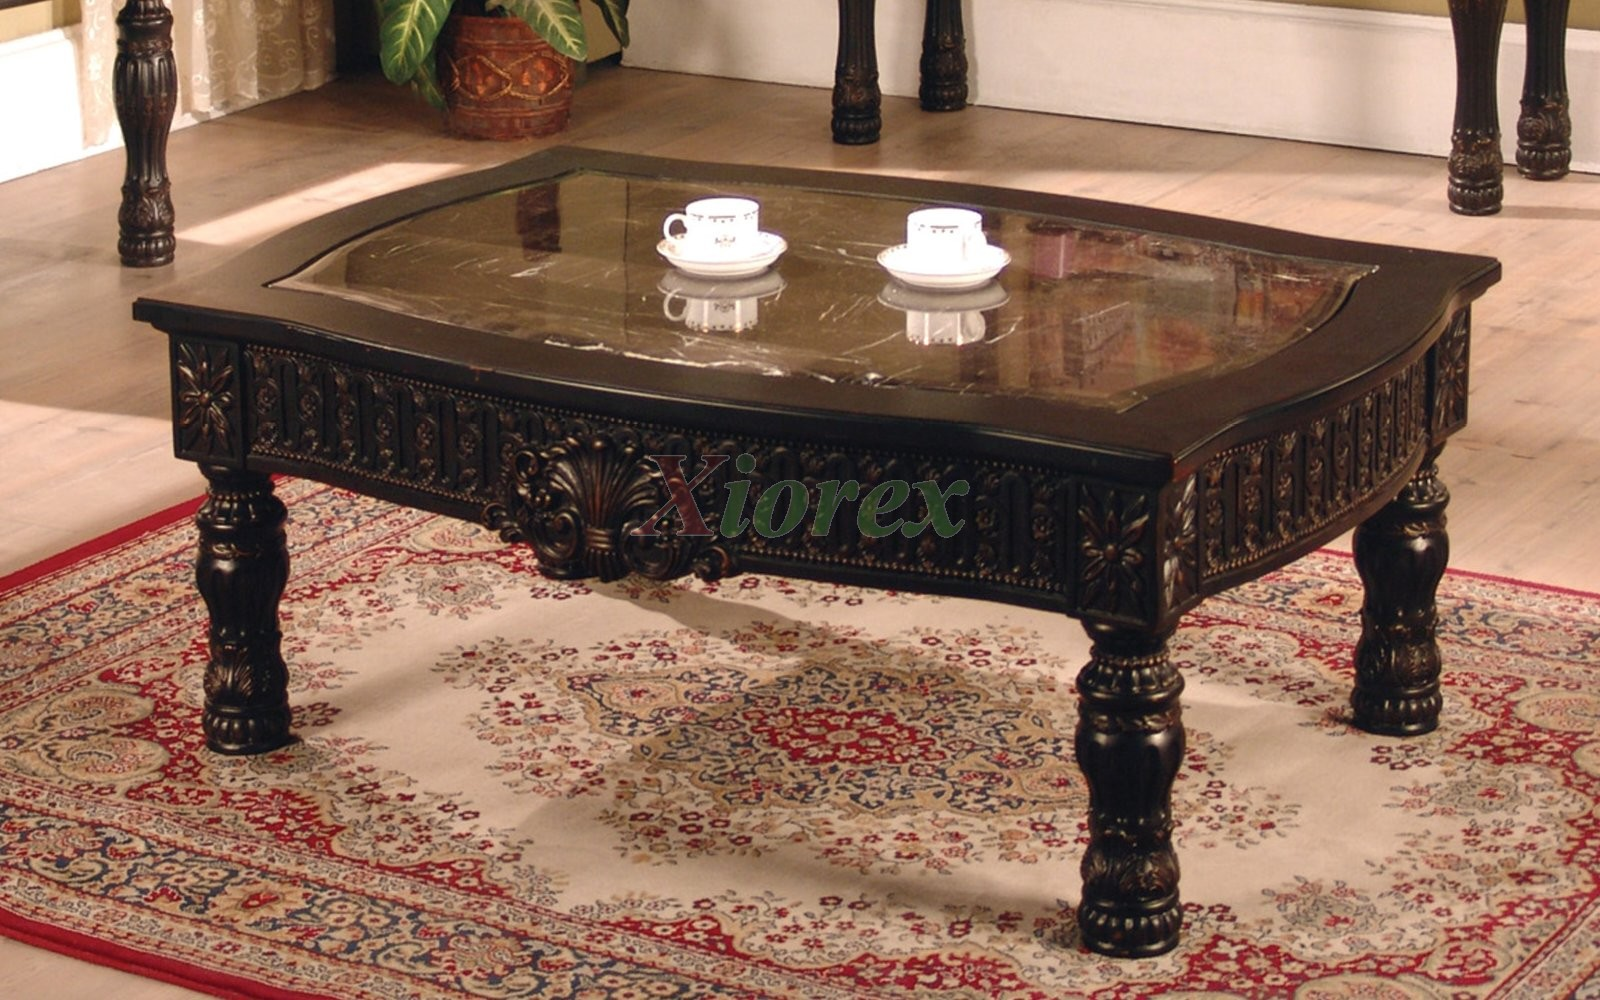 Ajax rectangle coffee table with faux marble top inlay for Marble top coffee table rectangle